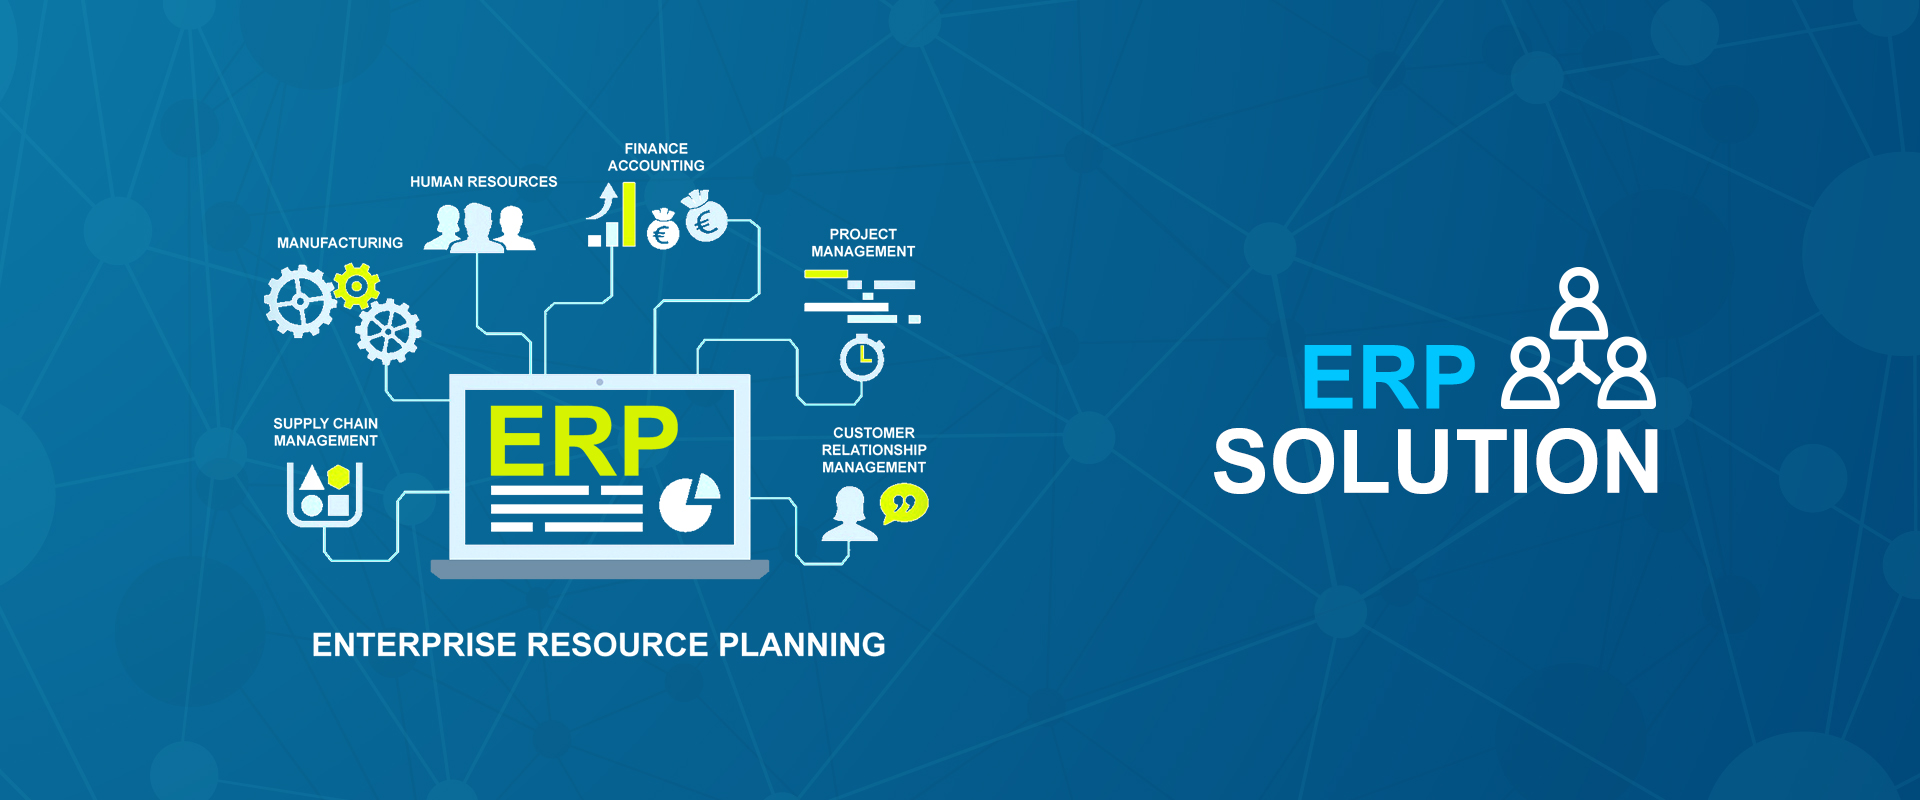 ERP - Enterprise Resource Planning System